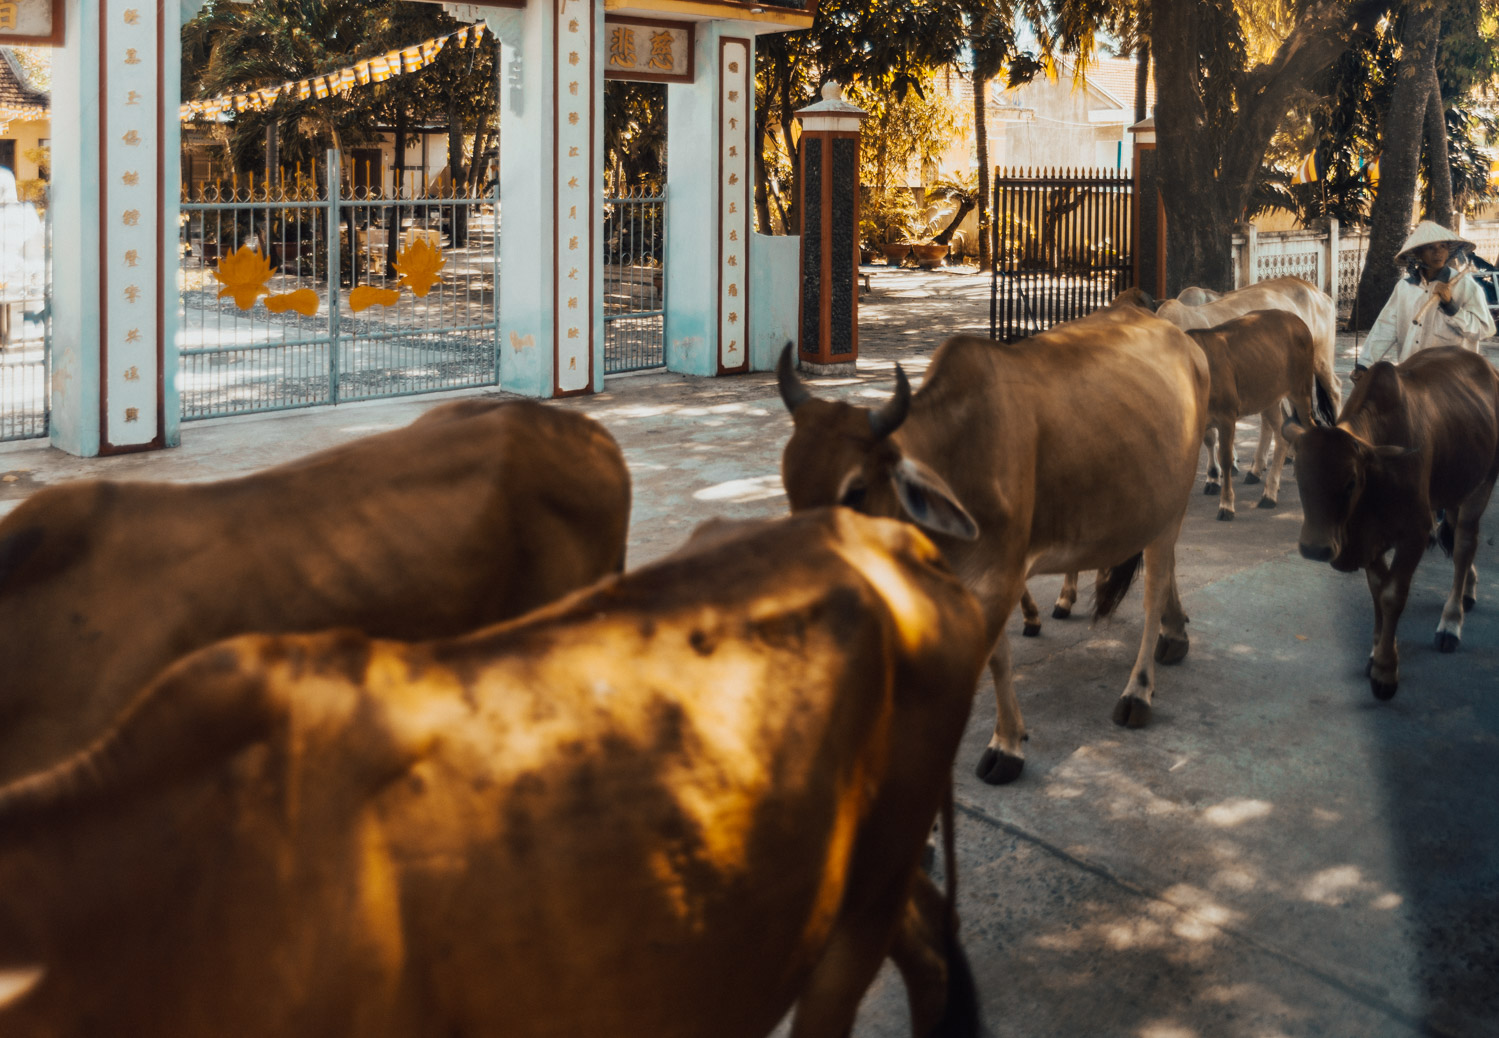 Cows in Phu Yen, Vietnam